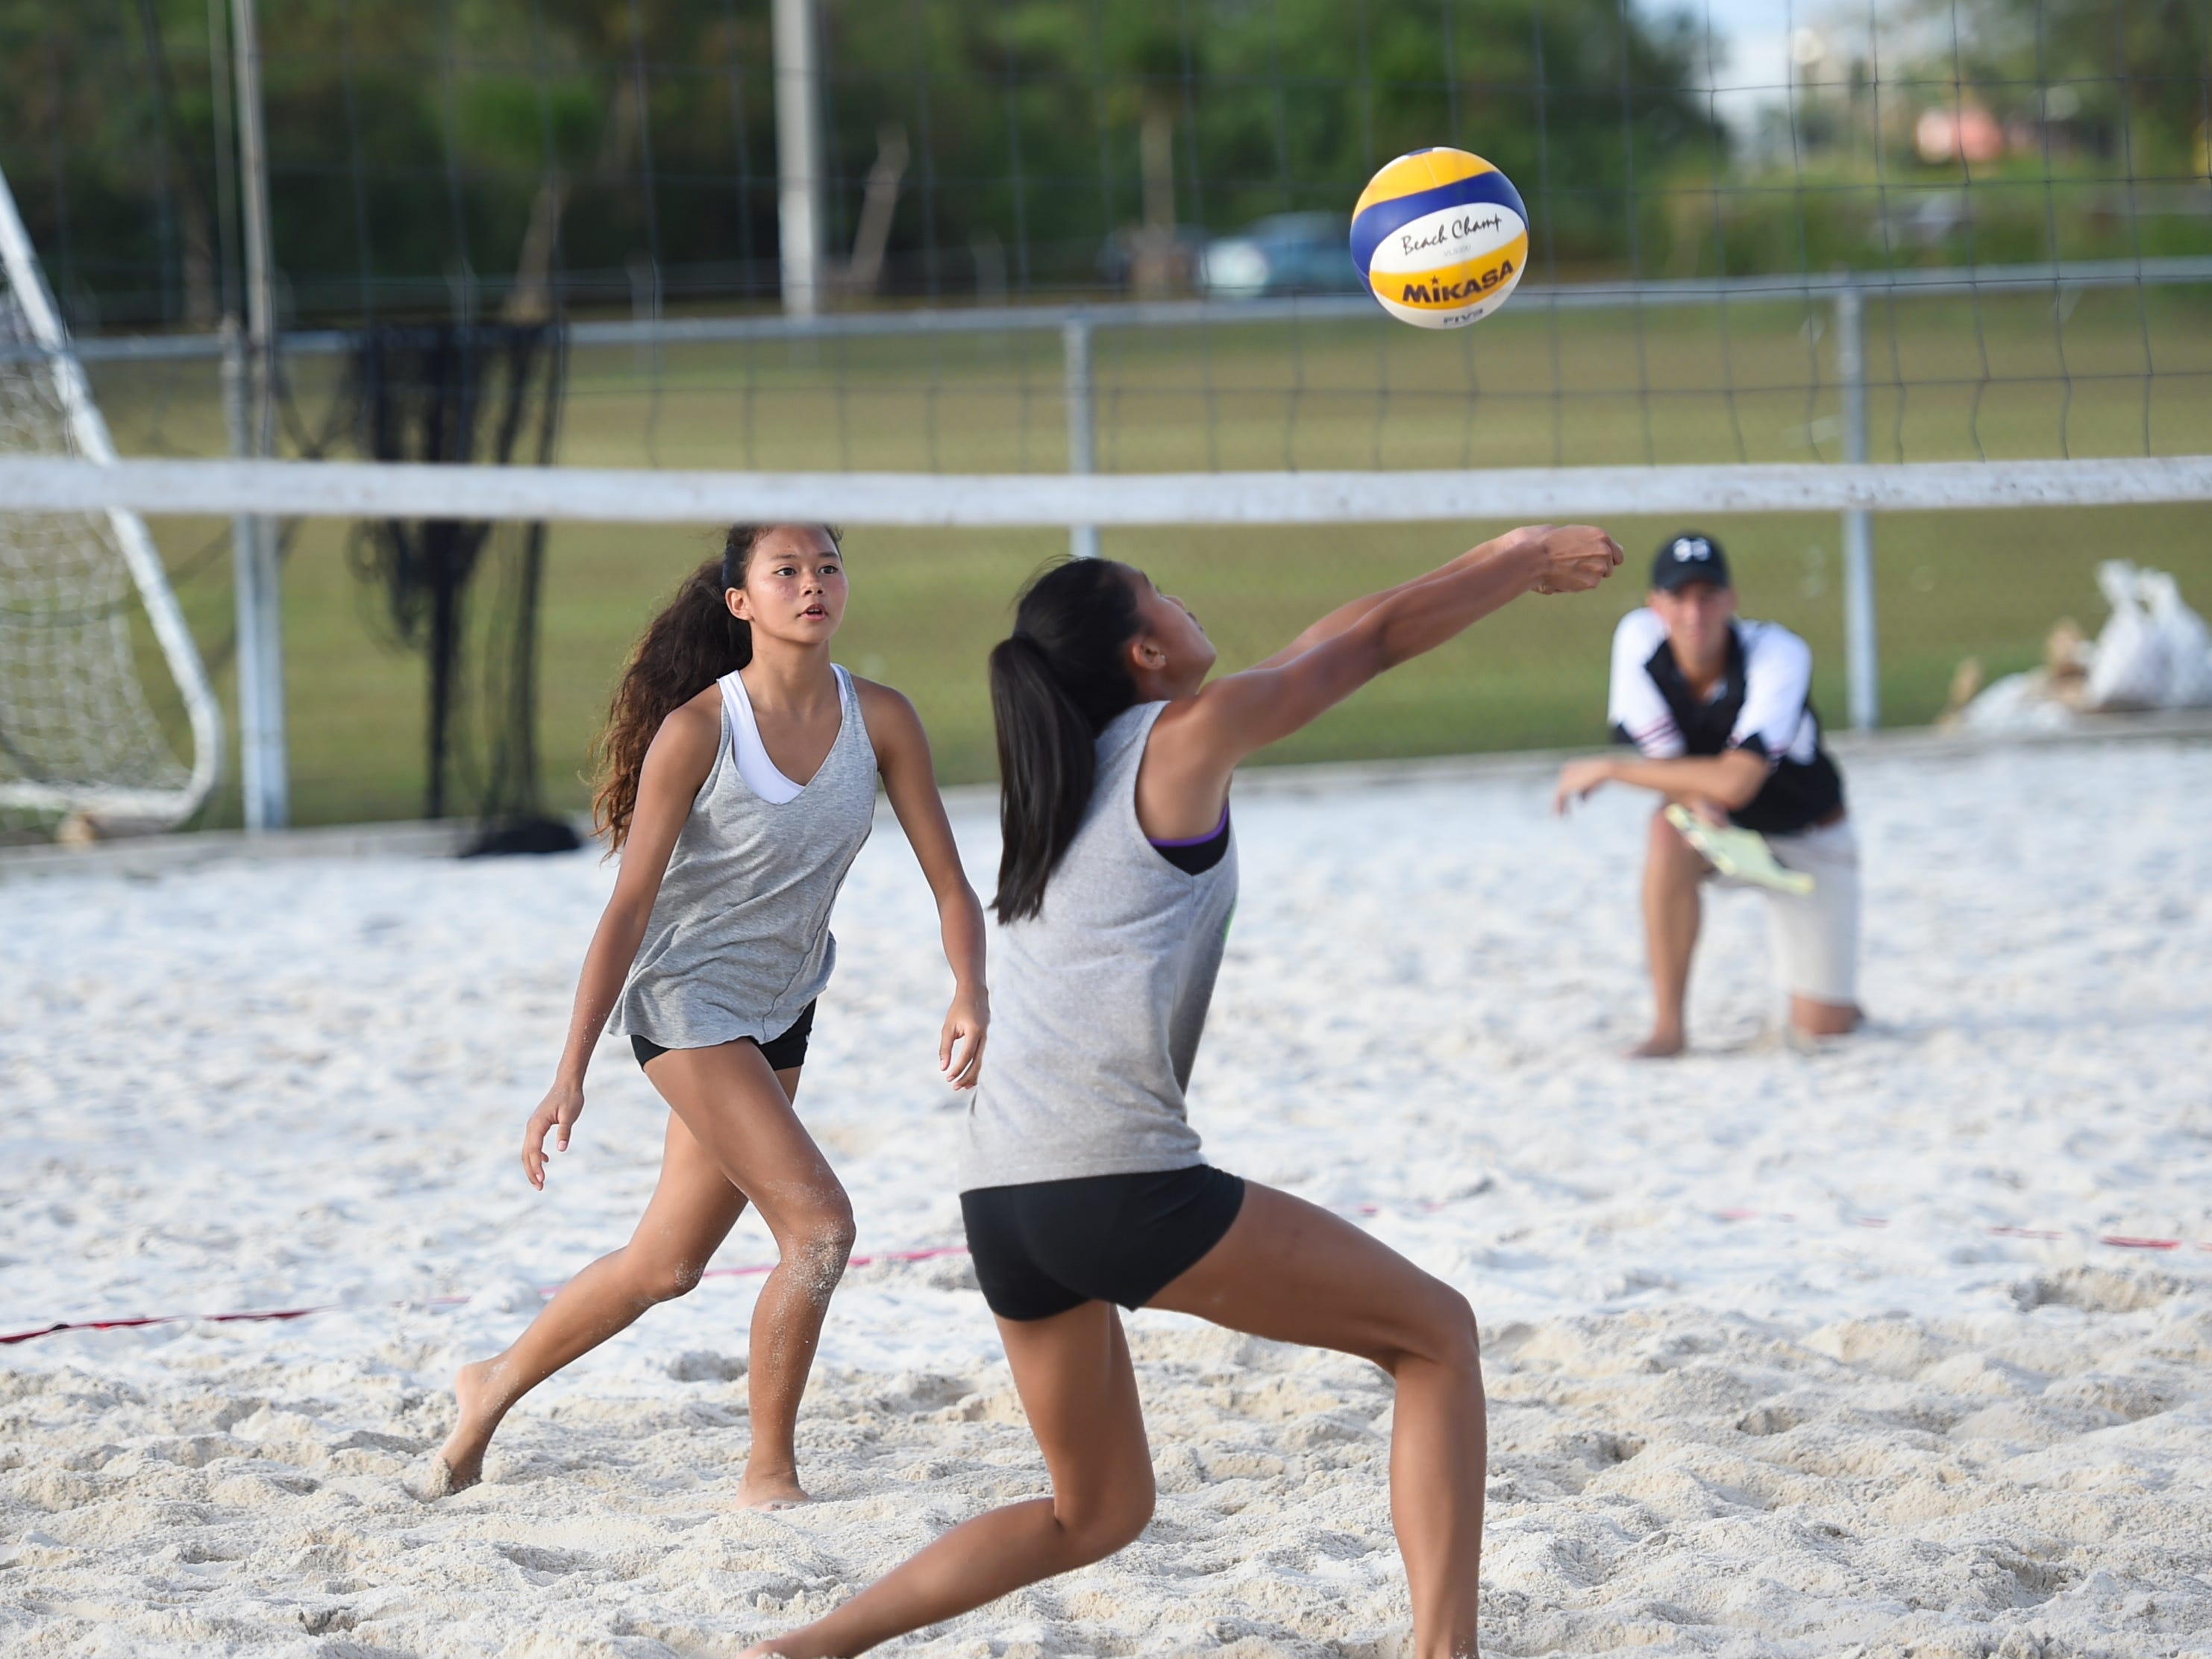 St. John's teammates Kristen Serrano, right, and Yasmeen Lopez setup a play during the IIAAG Beach Volleyball championship game at the Guam Football Association National Training Center in Dededo, March 12, 2019.